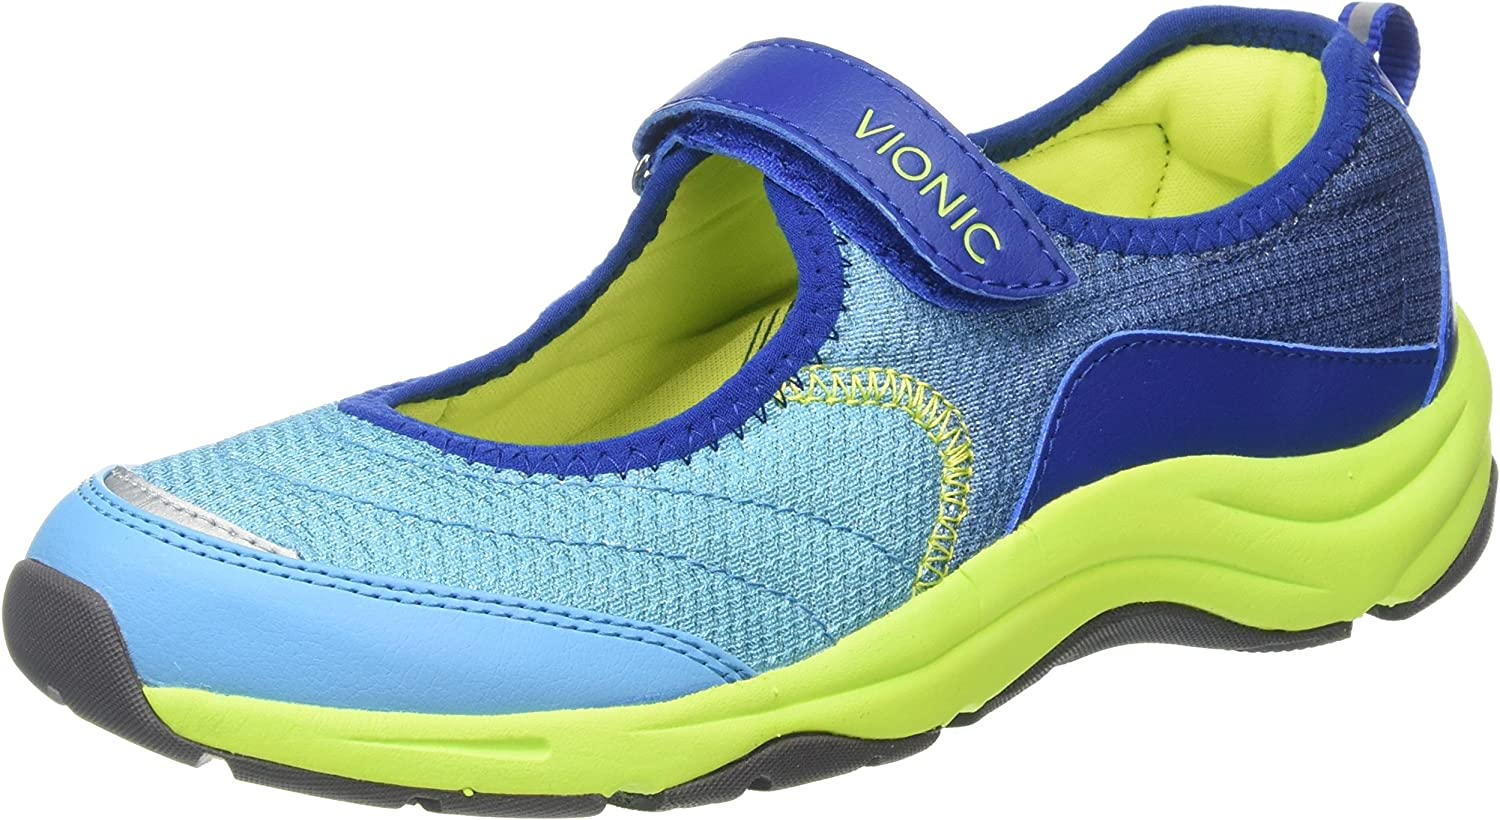 Women's Vionic, Action Sunset Slip on sporty shoes